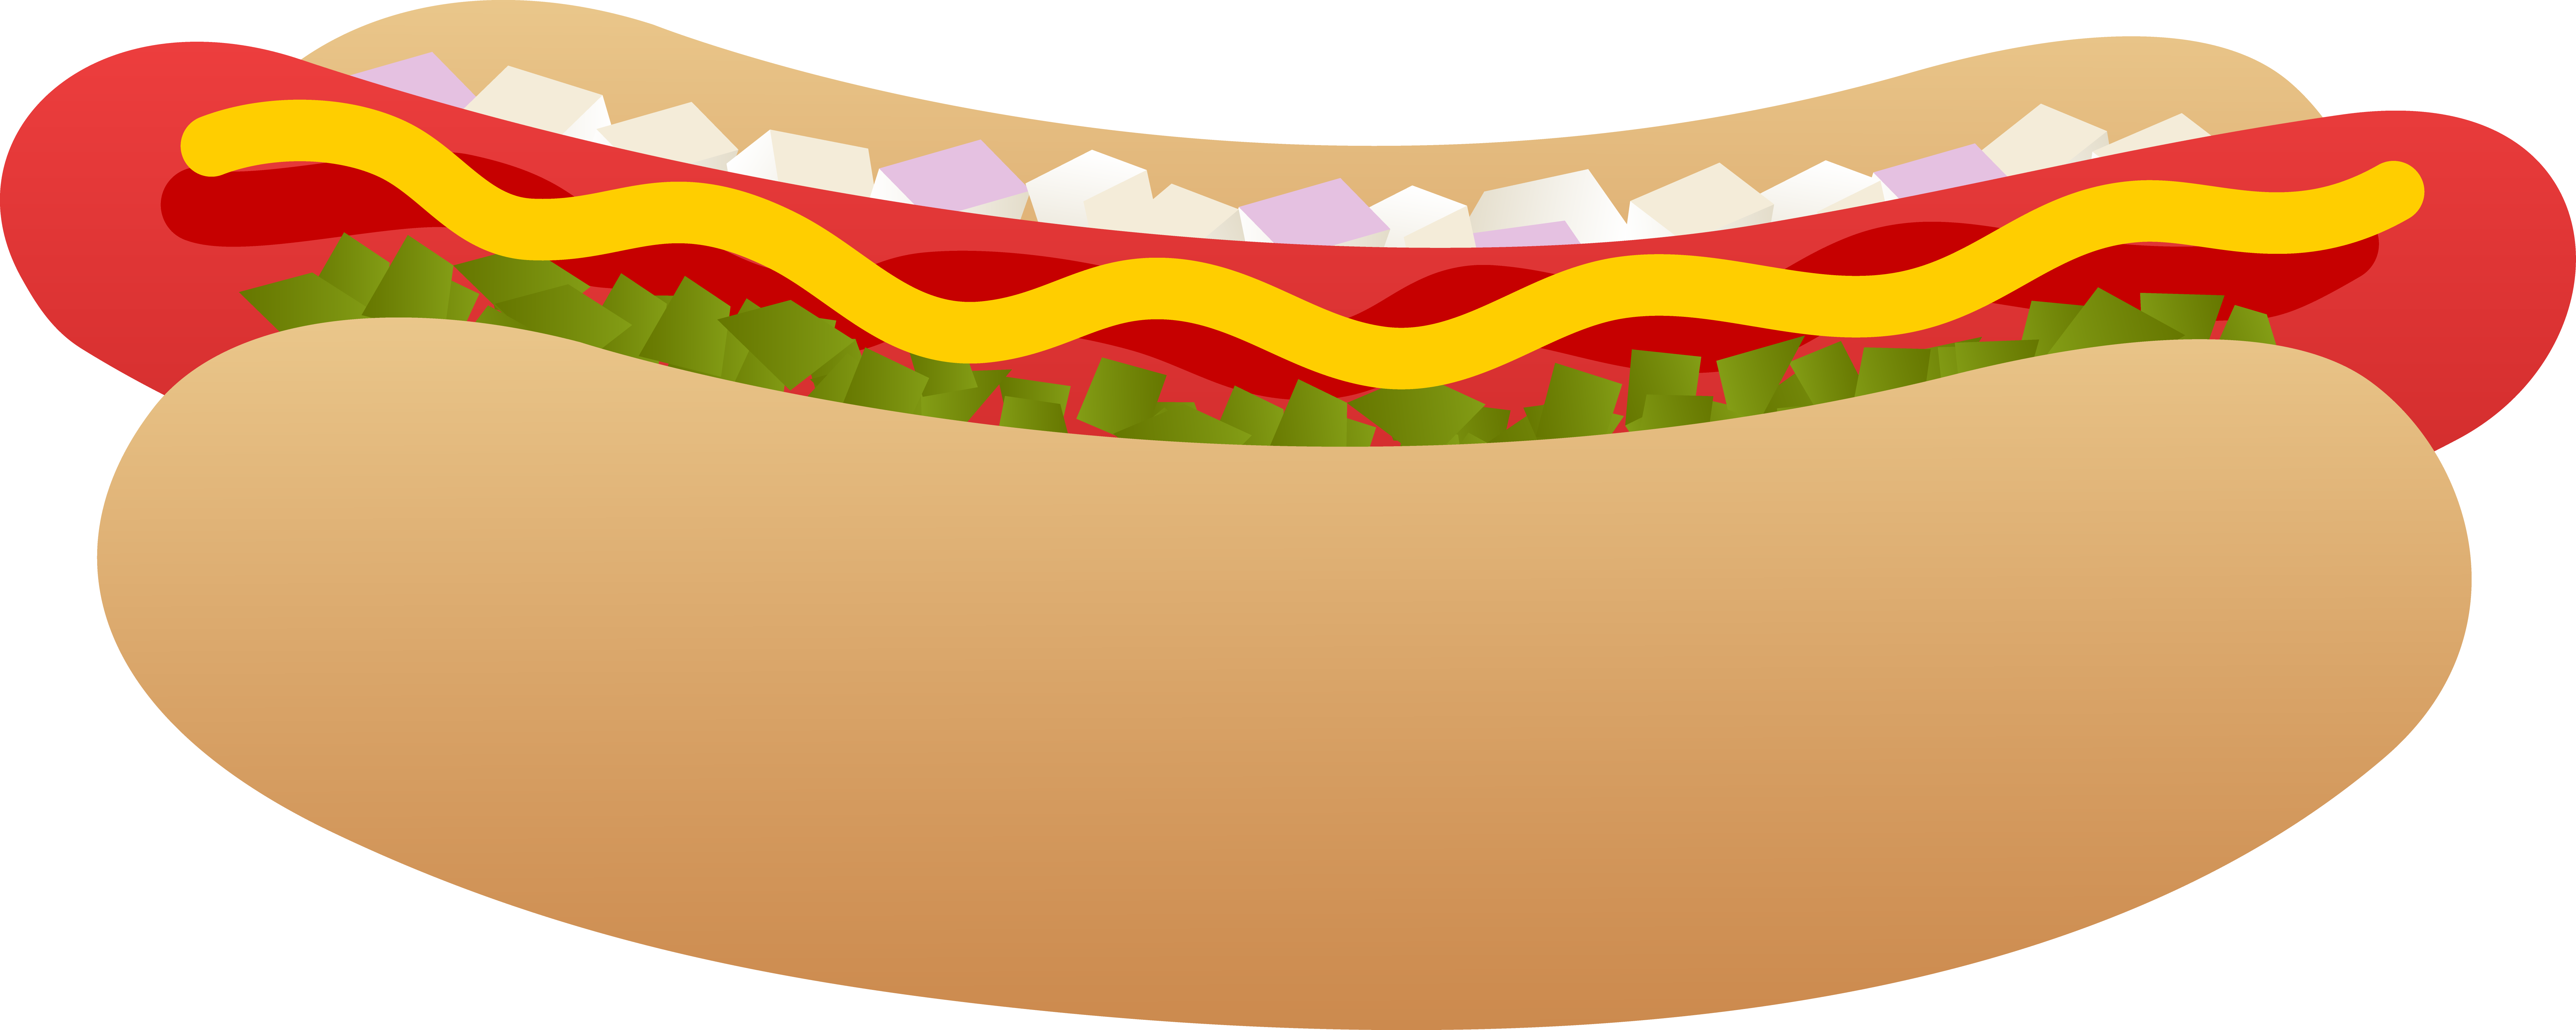 Happy dog clipart free picture download Hotdog clipart super dog - ClipartFest picture download